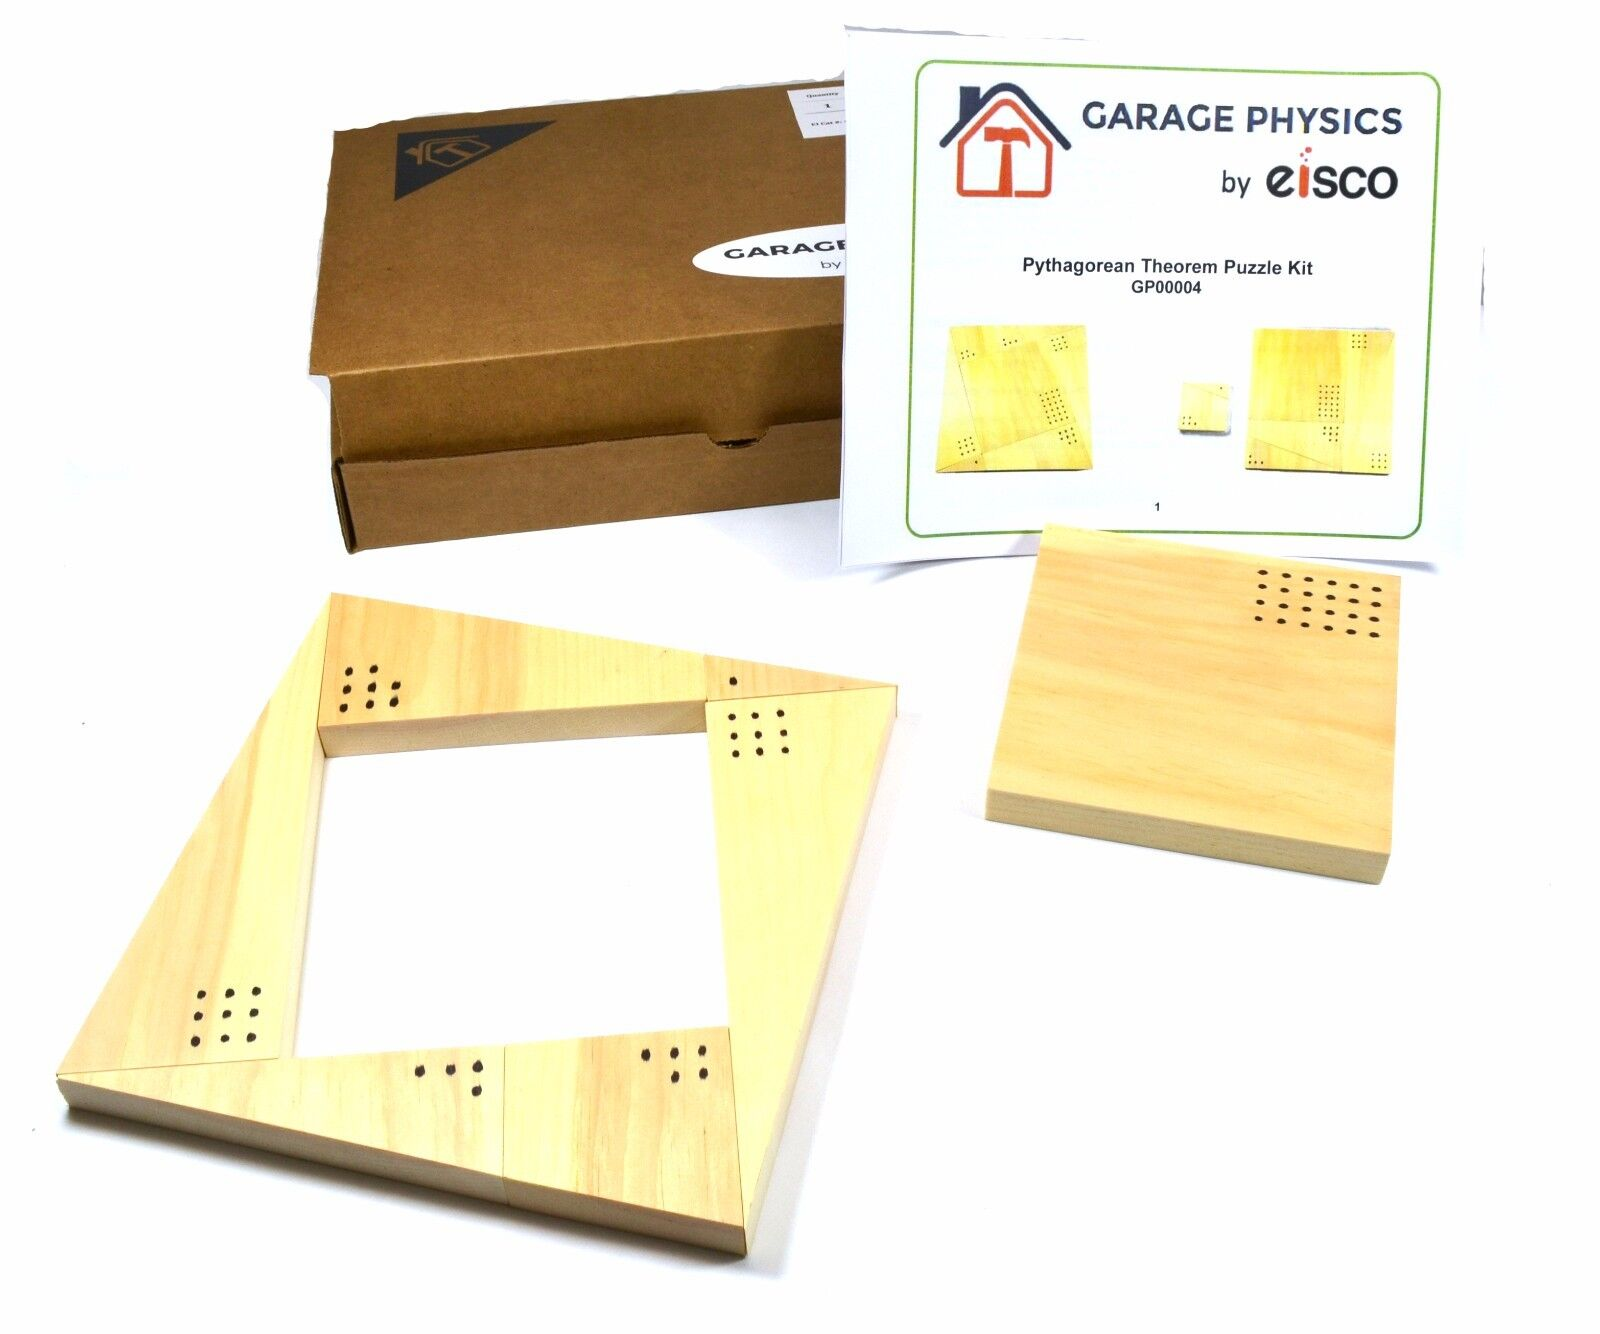 Eisco Garage Physics Pythagorean Theorem Puzzle Kit - Made in the United States